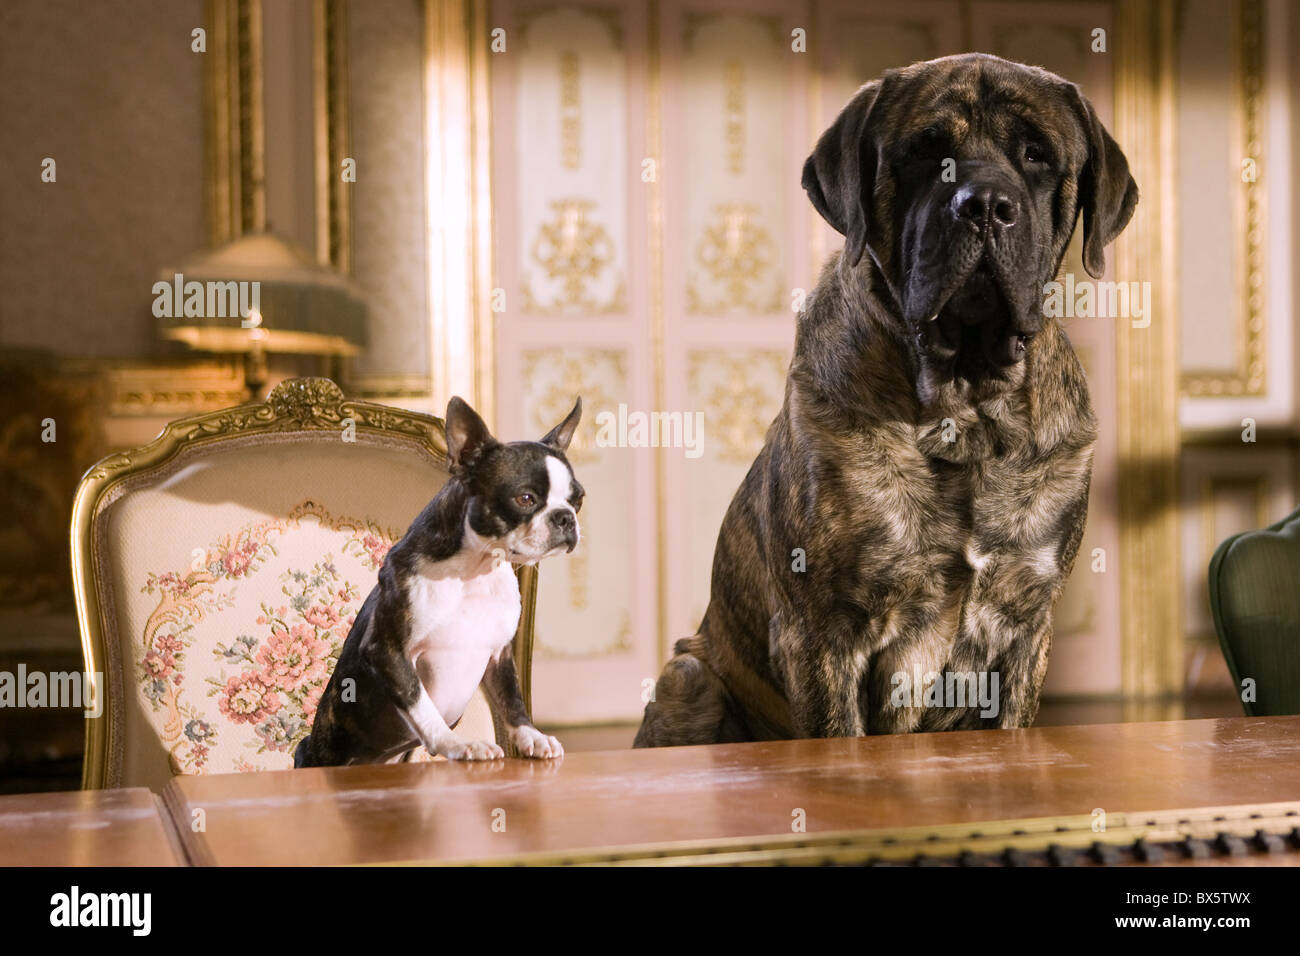 Georgia Lenny Hotel For Dogs 2009 Stock Photo 33320726 Alamy